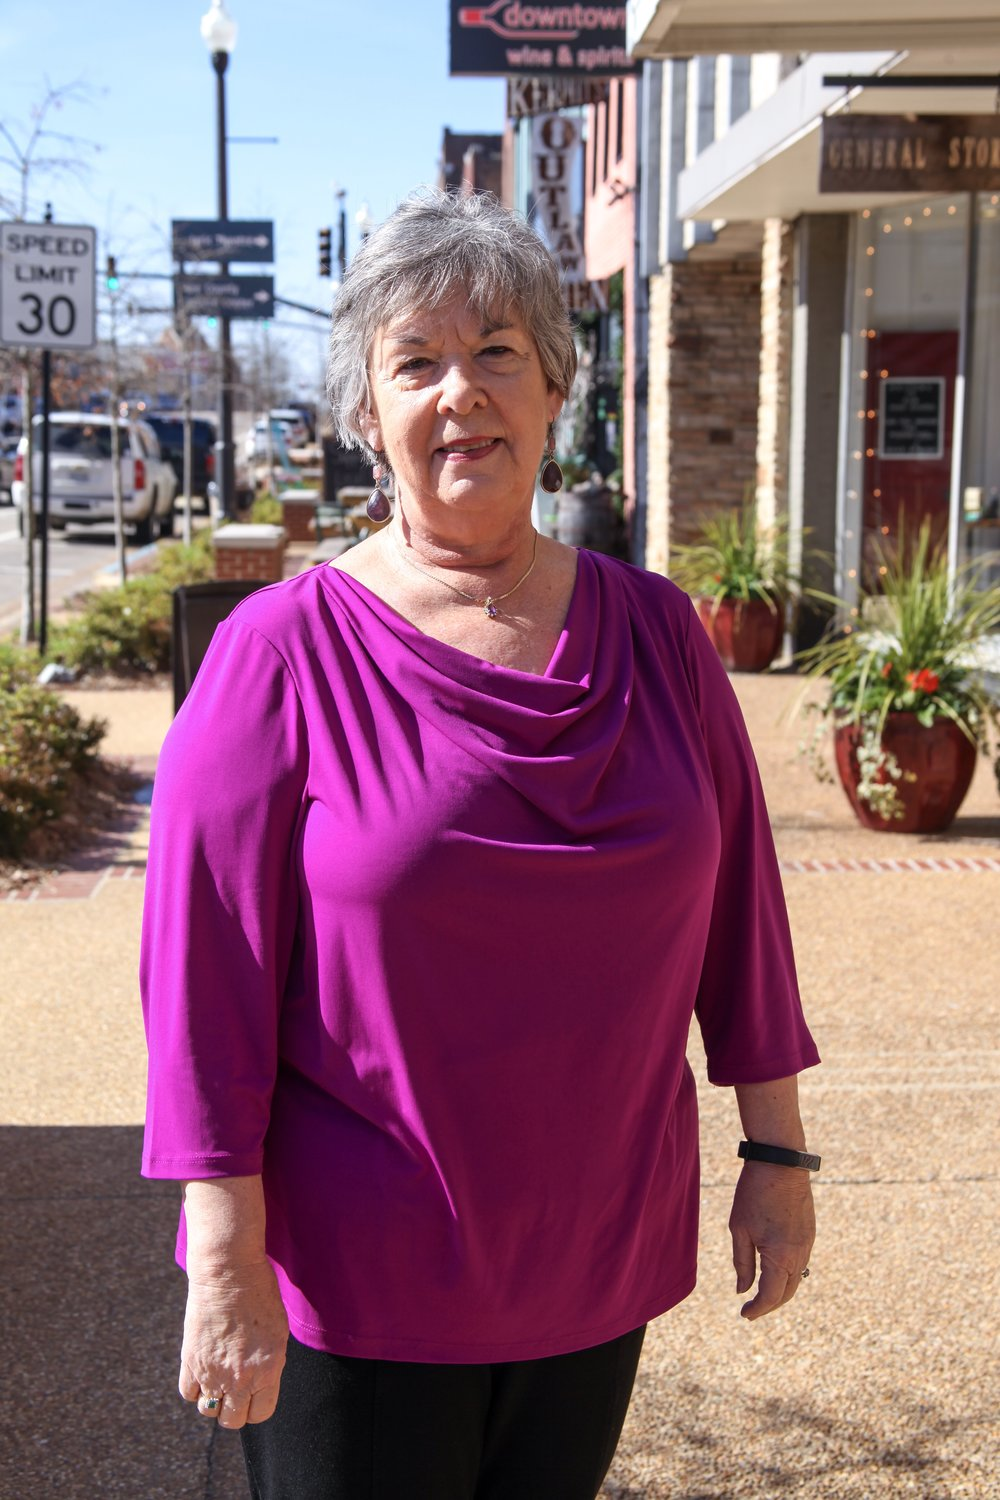 "Ellen Short - Ellen Short ,managing broker of TRI Inc Realtors,has been a Realtor for 48 years .She is a second generation Realtor in the company that was founded by her parents,WF(Bill) and Sue Tate.Mrs. Short specializes in residential sales and leasing in the Tupelo market. She has served on multiple volunteer community boards and committees and multiple professional local,state,and national realestate associations.In 2003 she served as president of the Mississippi Association of Realtors and has served as Federal Political Coordinator for Senator Roger Wicker for 24 years. She has been awarded the Northeast Mississippi Board of Realtors ""Realtor of the year"" award, the National Association of Realtors Meritorious Service Award, the Mississippi Association and National Association of Realtors'(RPAC )Hall of Fame awards,and the Realtor Emeritus Award.She has been married to Jeffrey Short ,a retired real estate appraiser,for 48 years and is a proud mother of three and grandmother of six. One son, Clay Short, is following in his grandfather's footsteps as a commercial Realtor and another son,Andy Short, is a realestate appraiser."